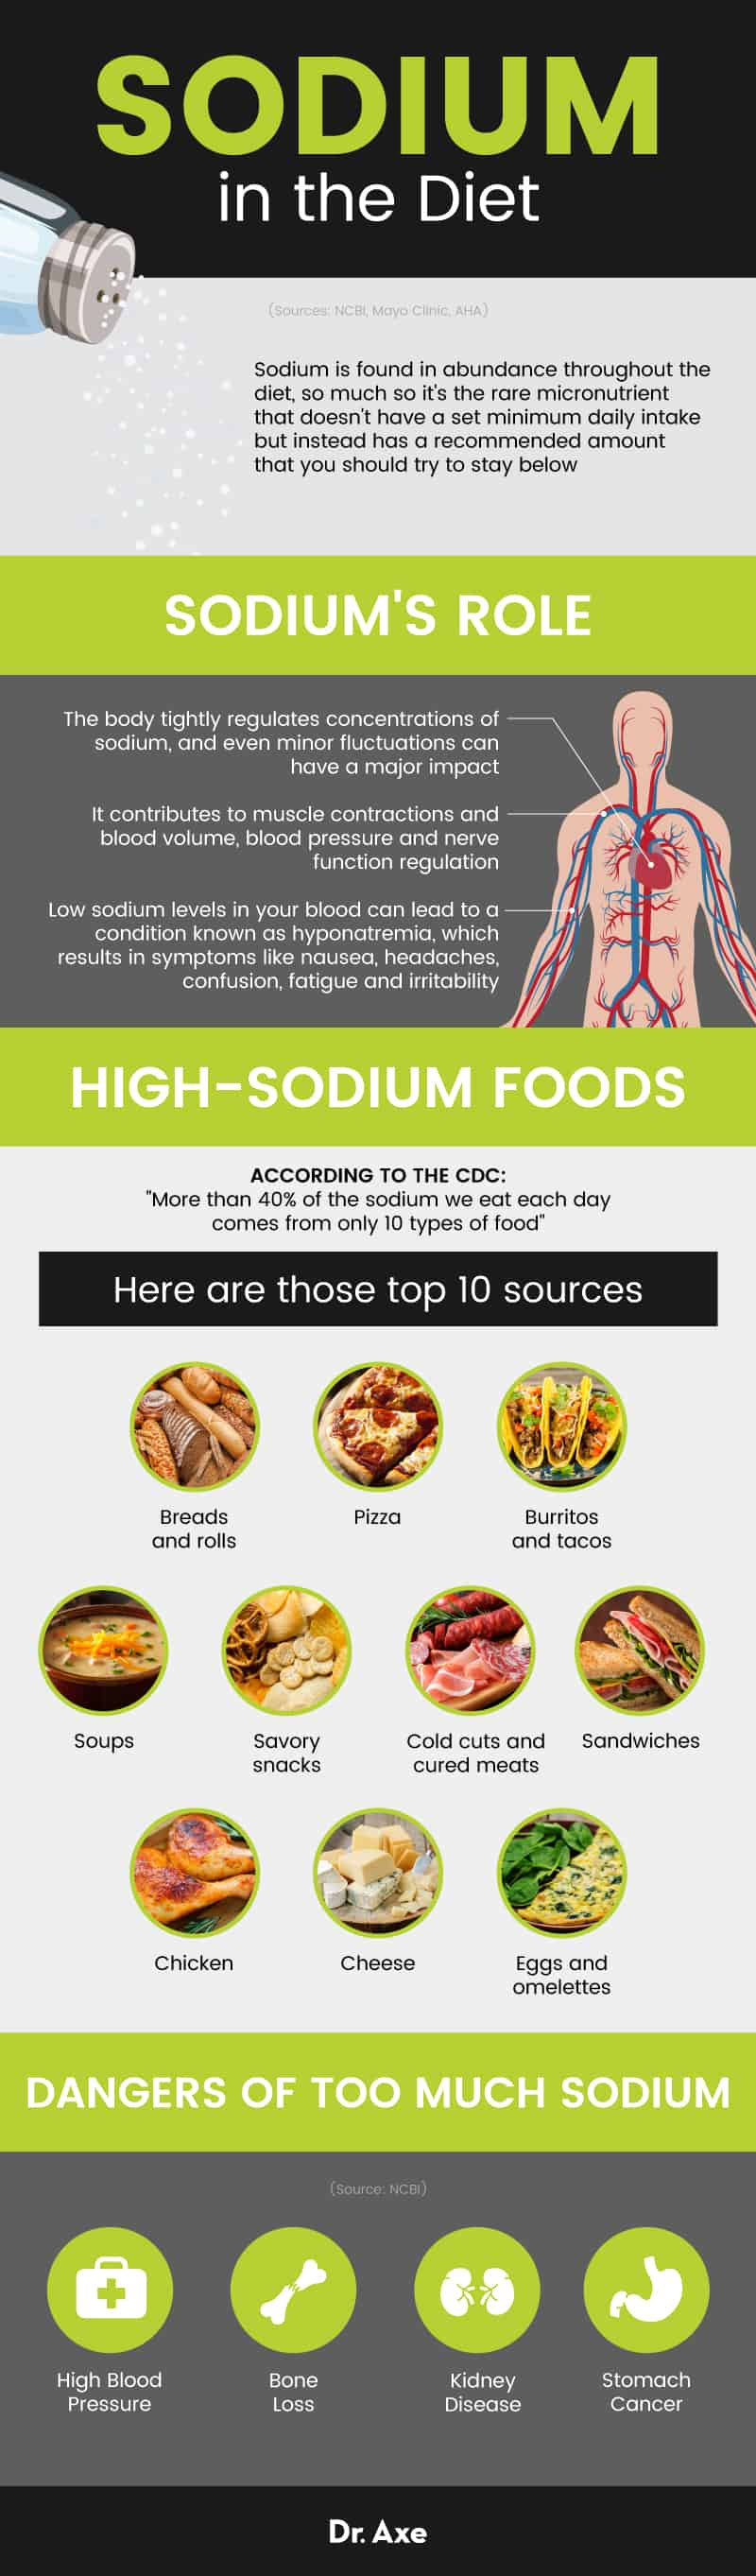 Foods high in sodium - Dr. Axe